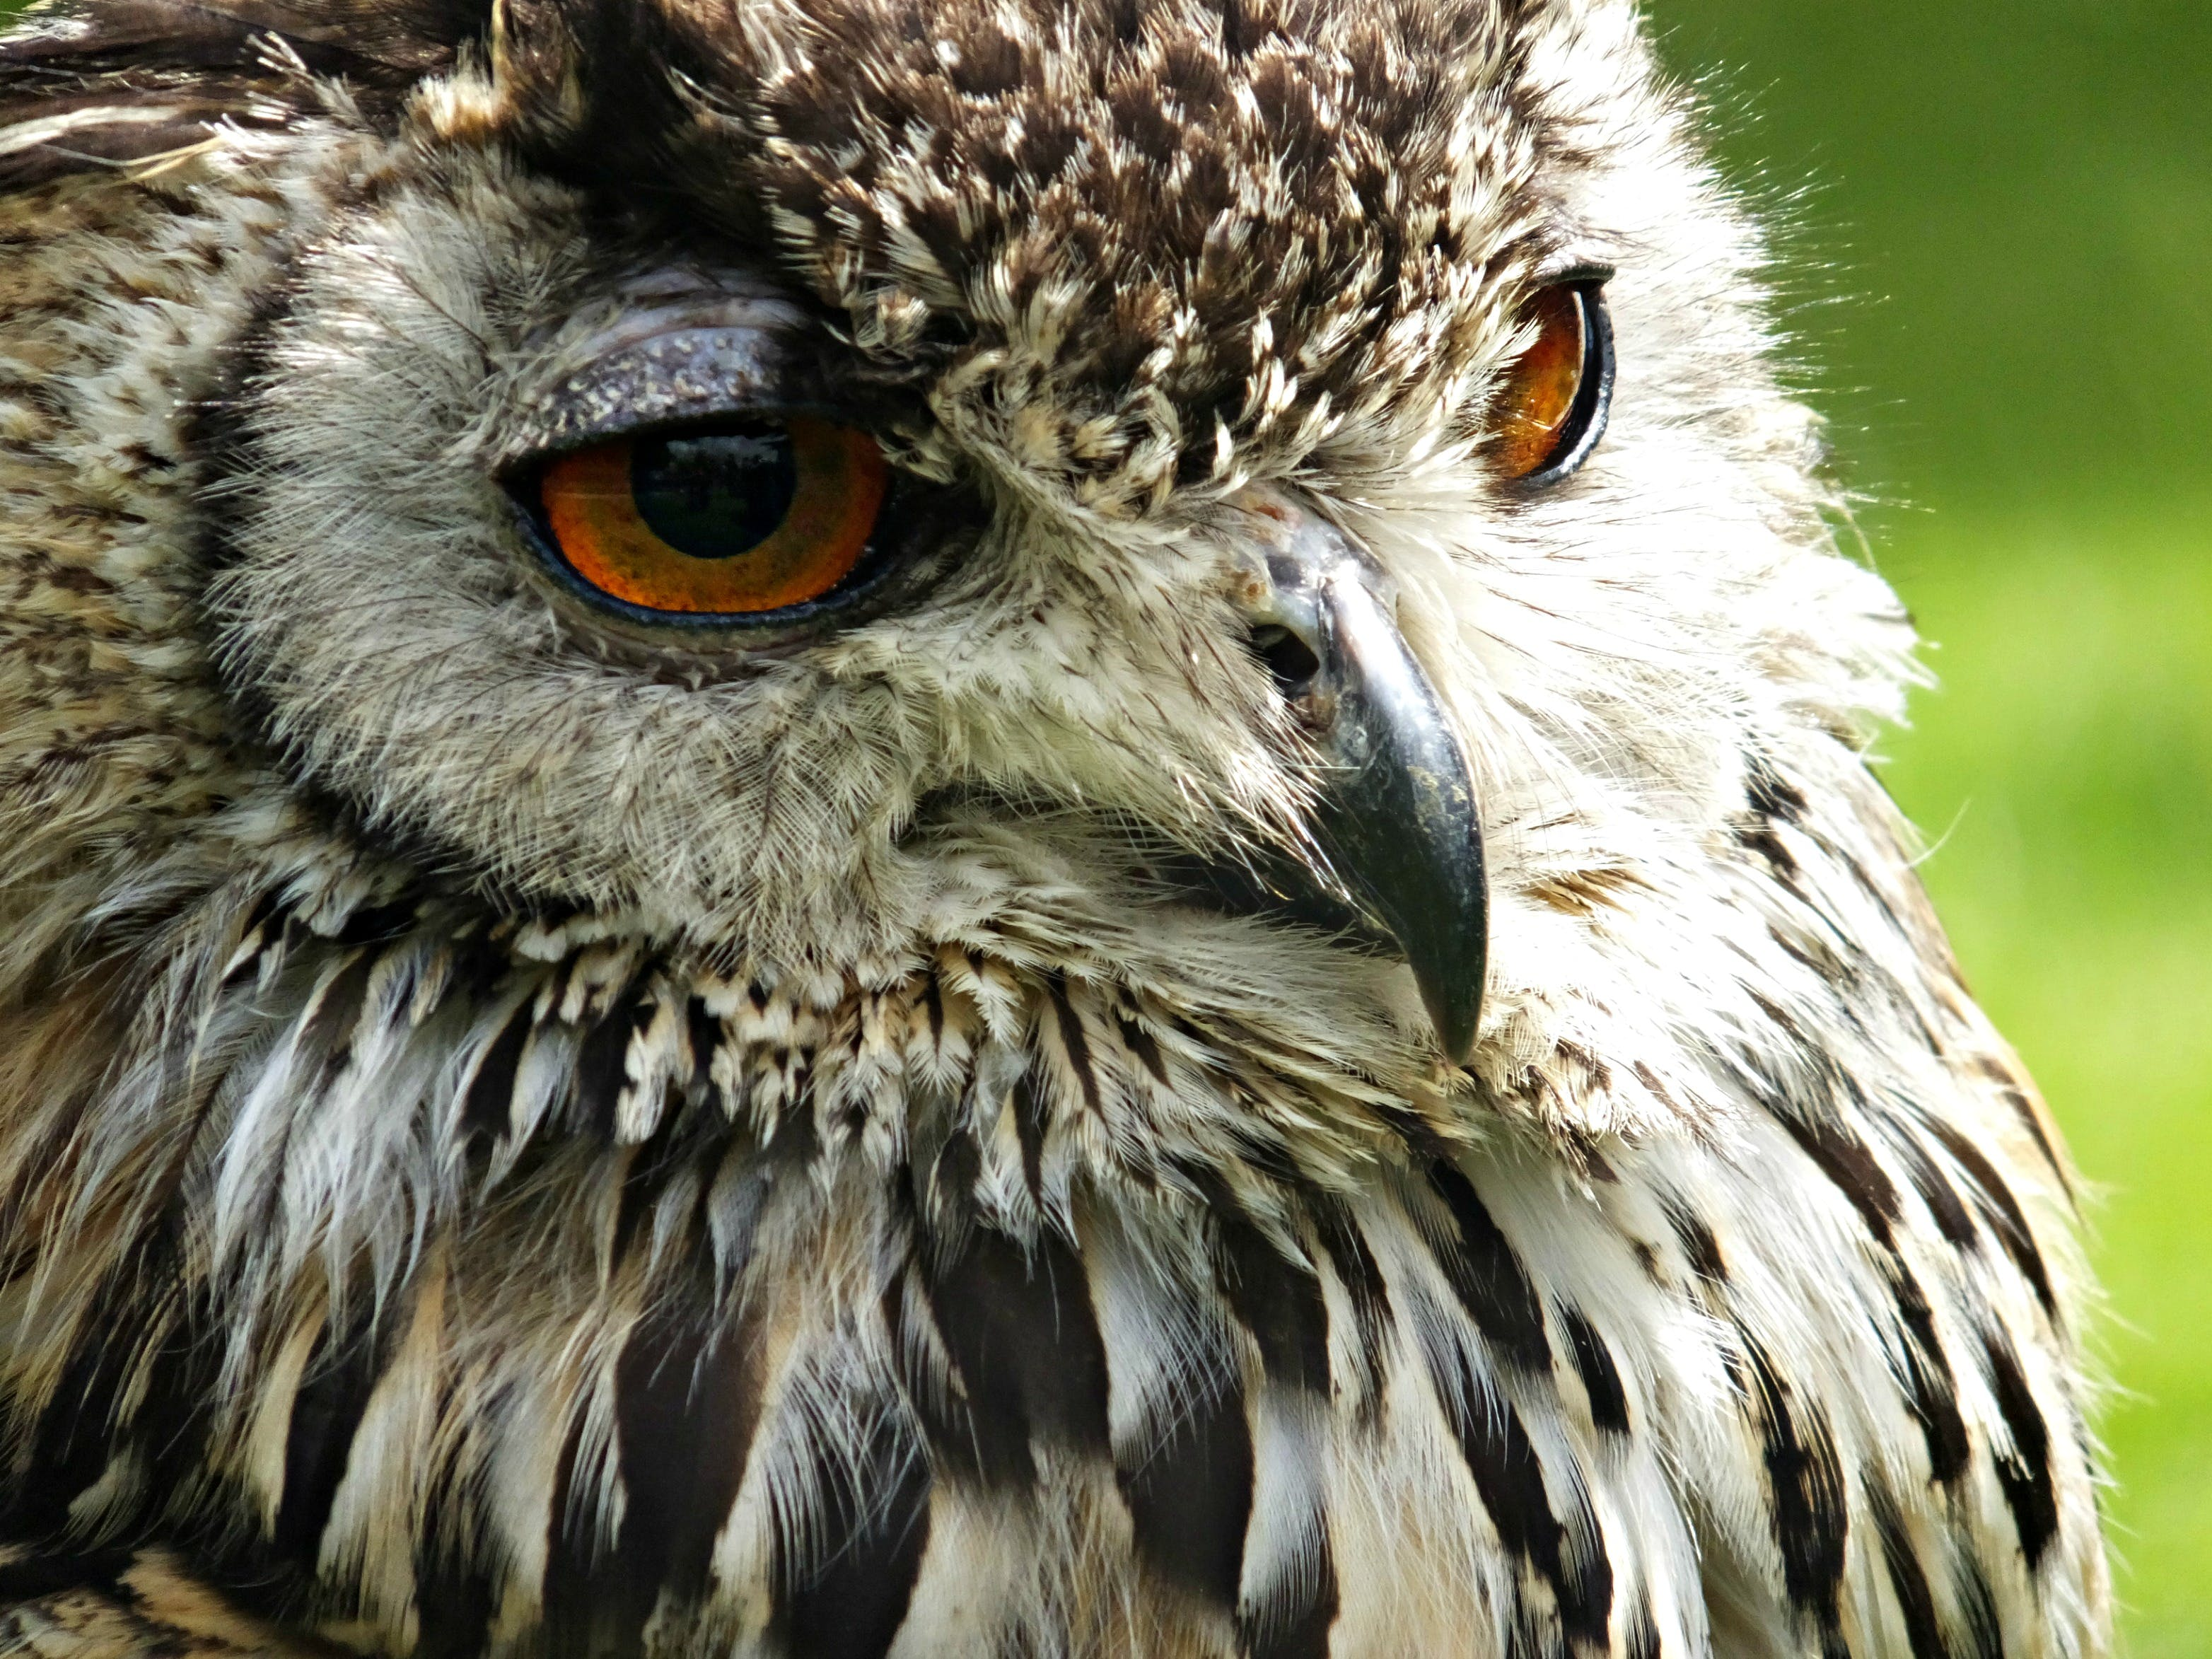 Brown and White Owl in Shallow Photo